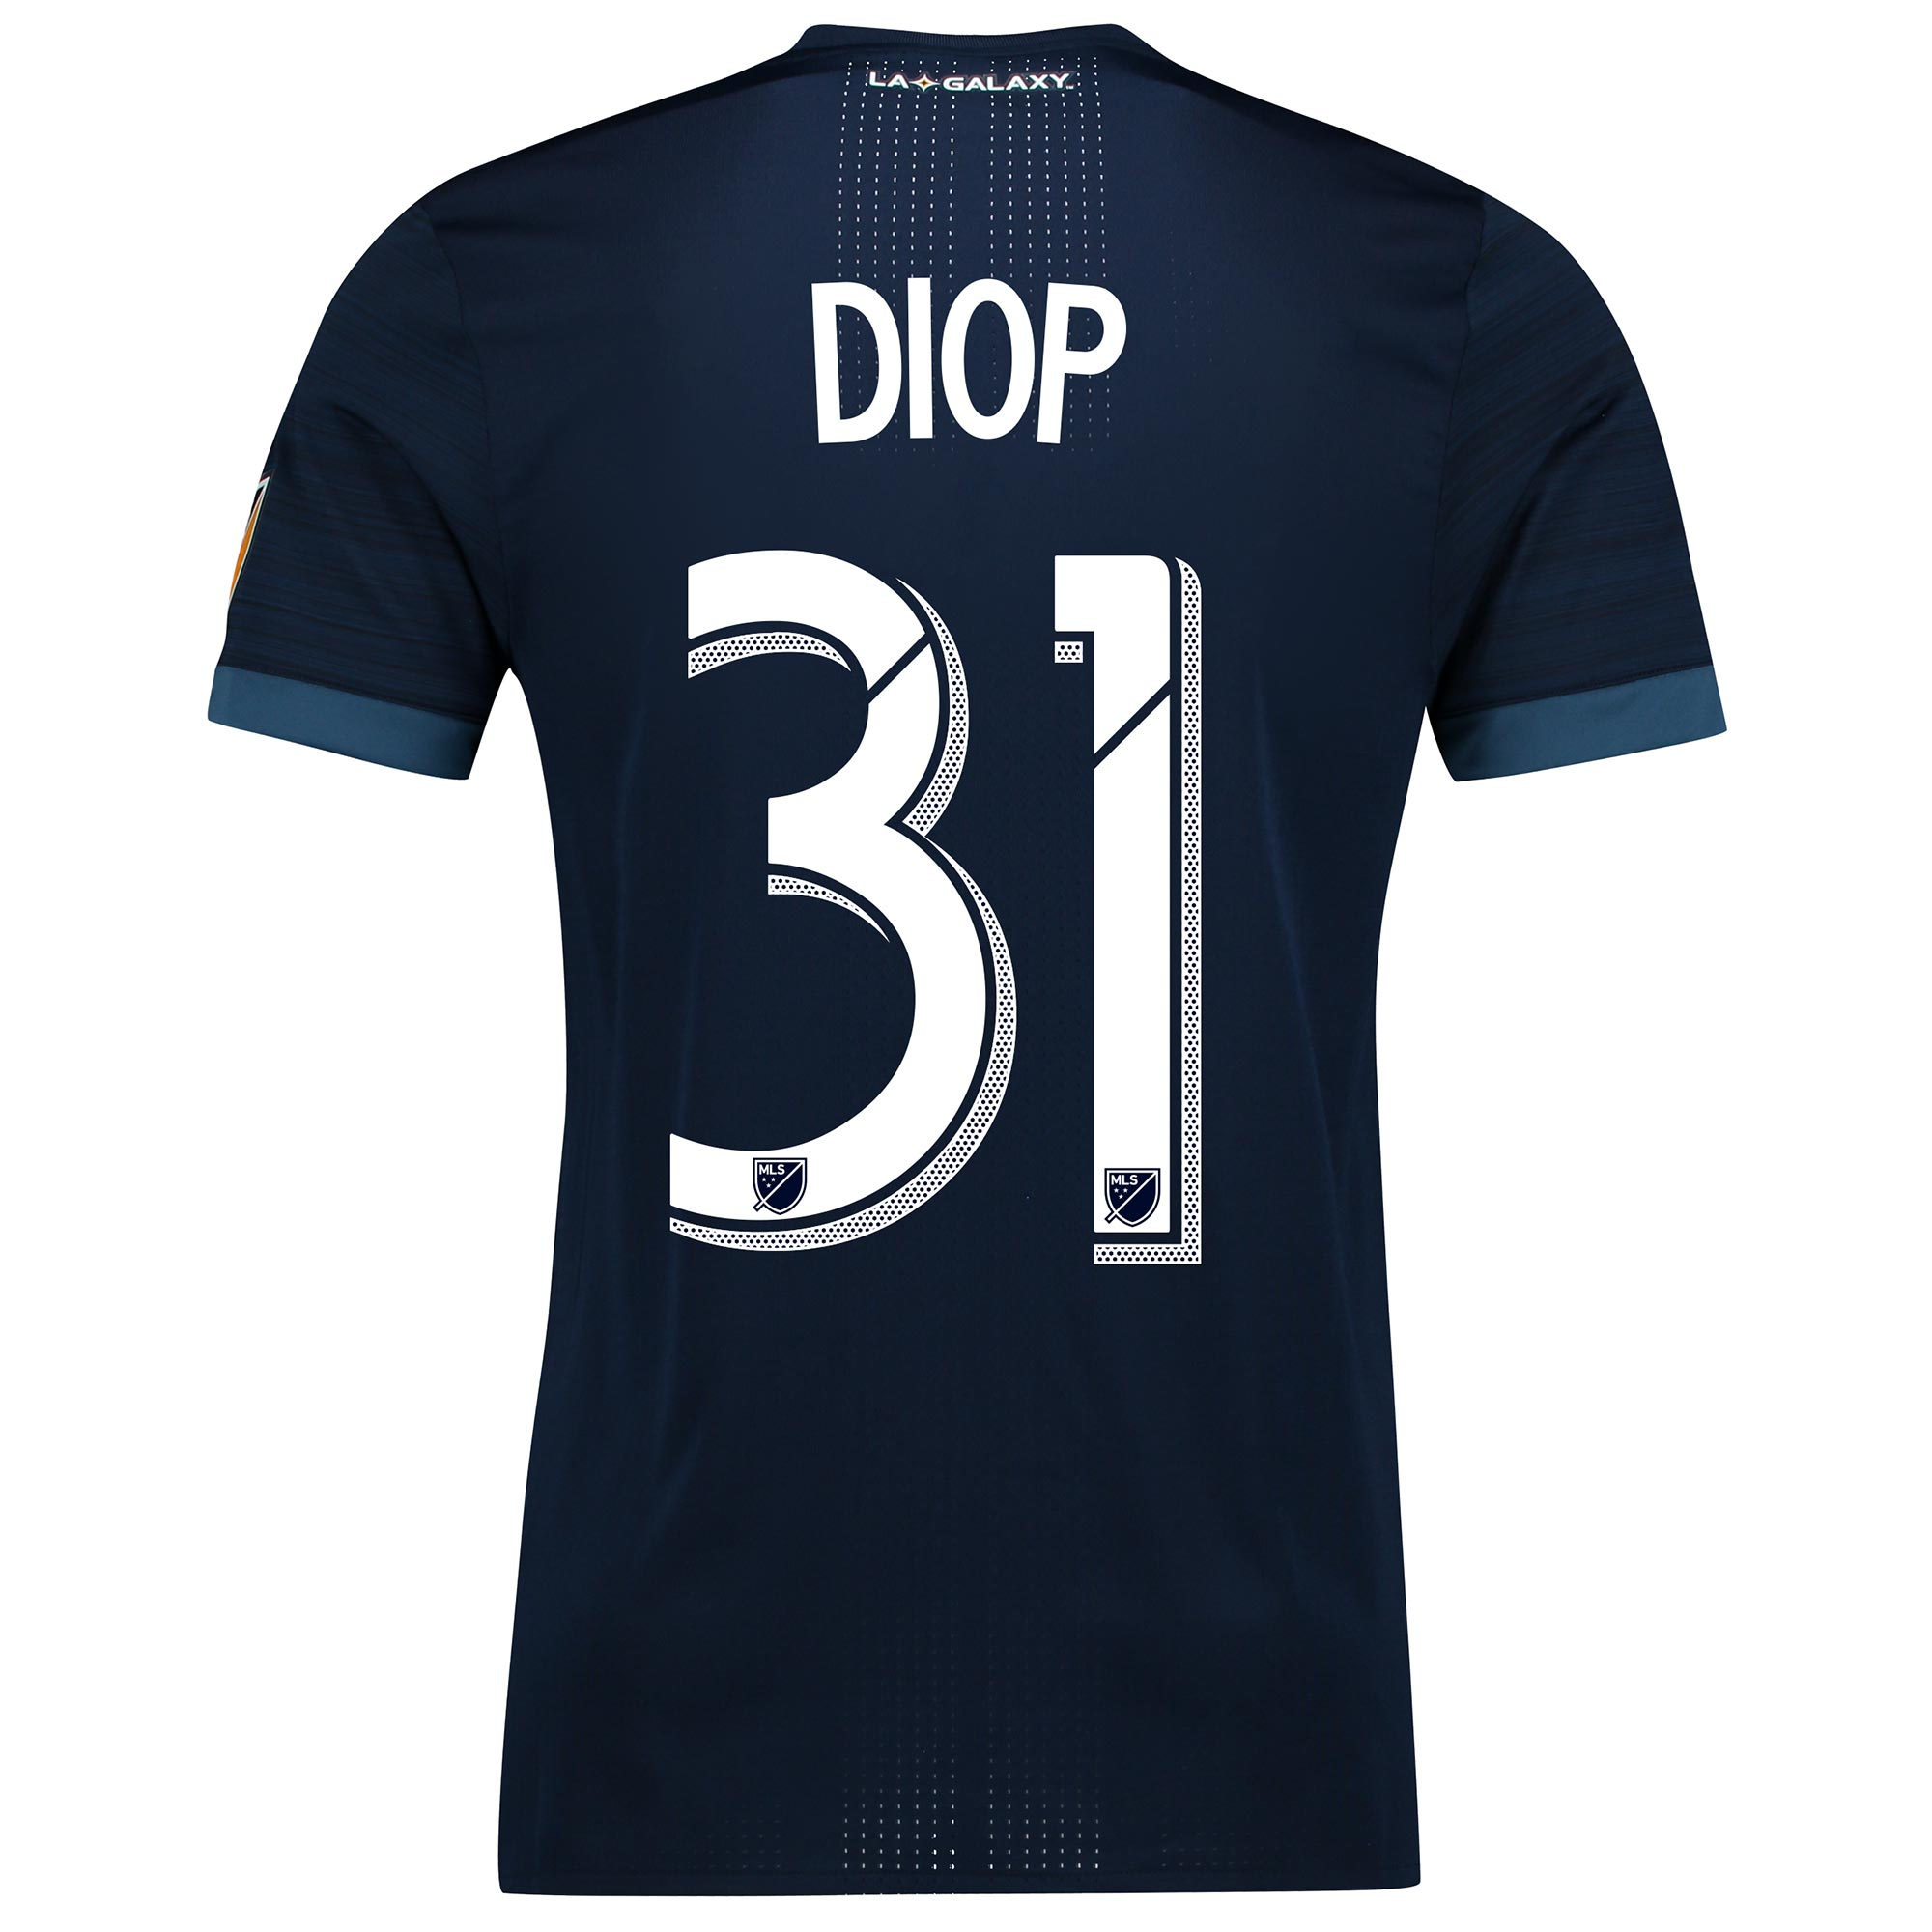 LA Galaxy Authentic Away Shirt 2017-18 with Diop 31 printing, N/A